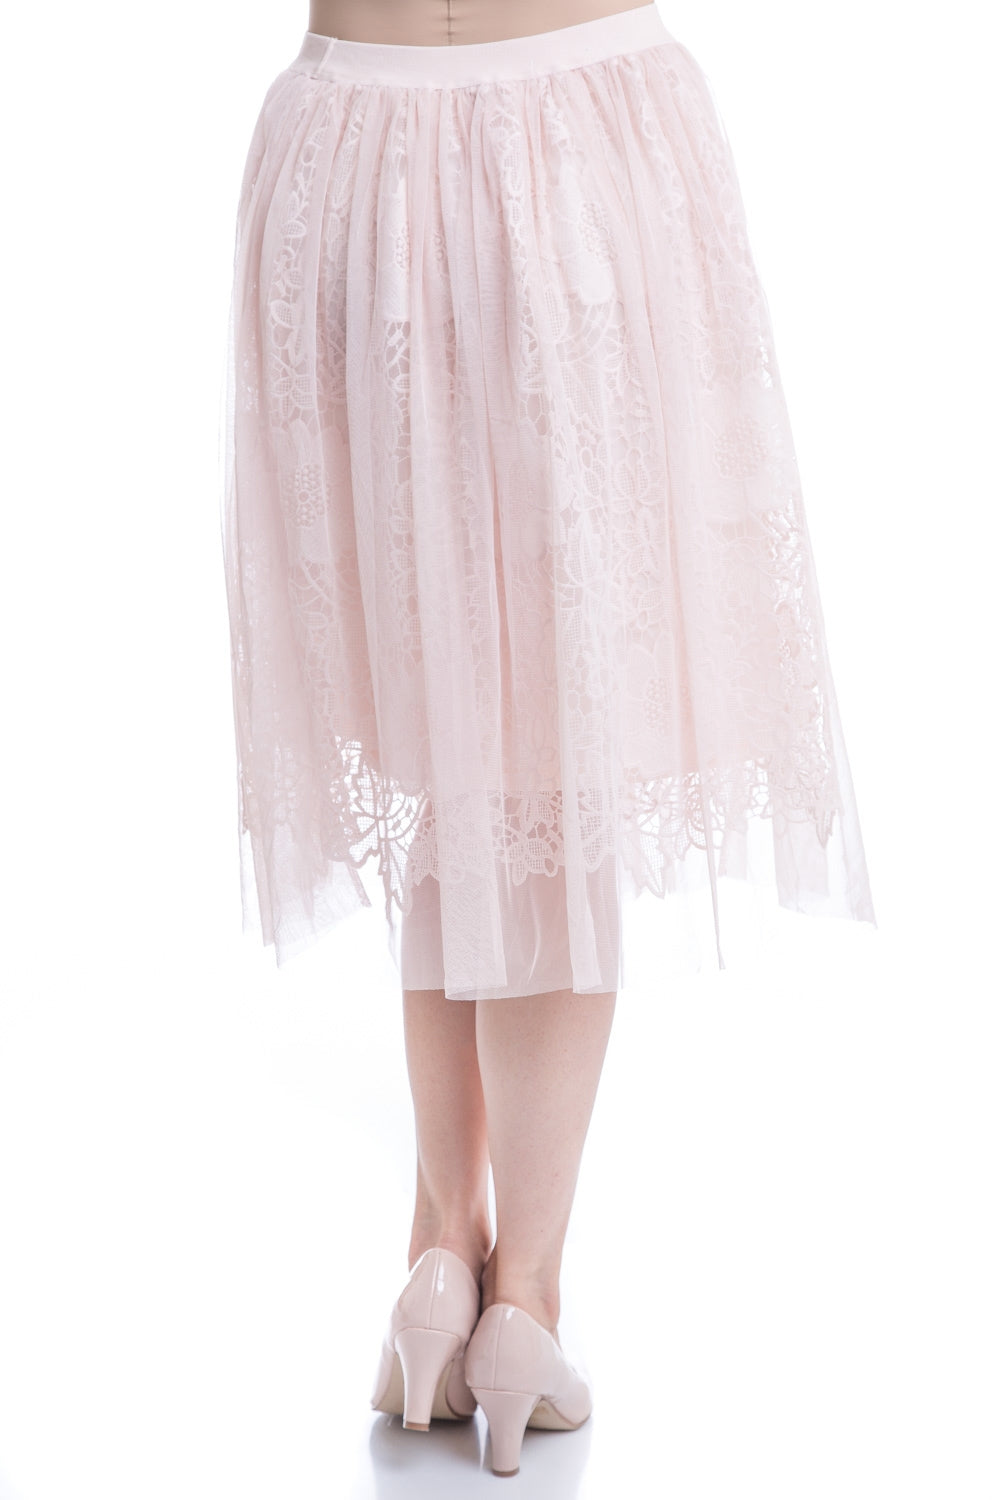 Type 2 Ethereal Moment Skirt